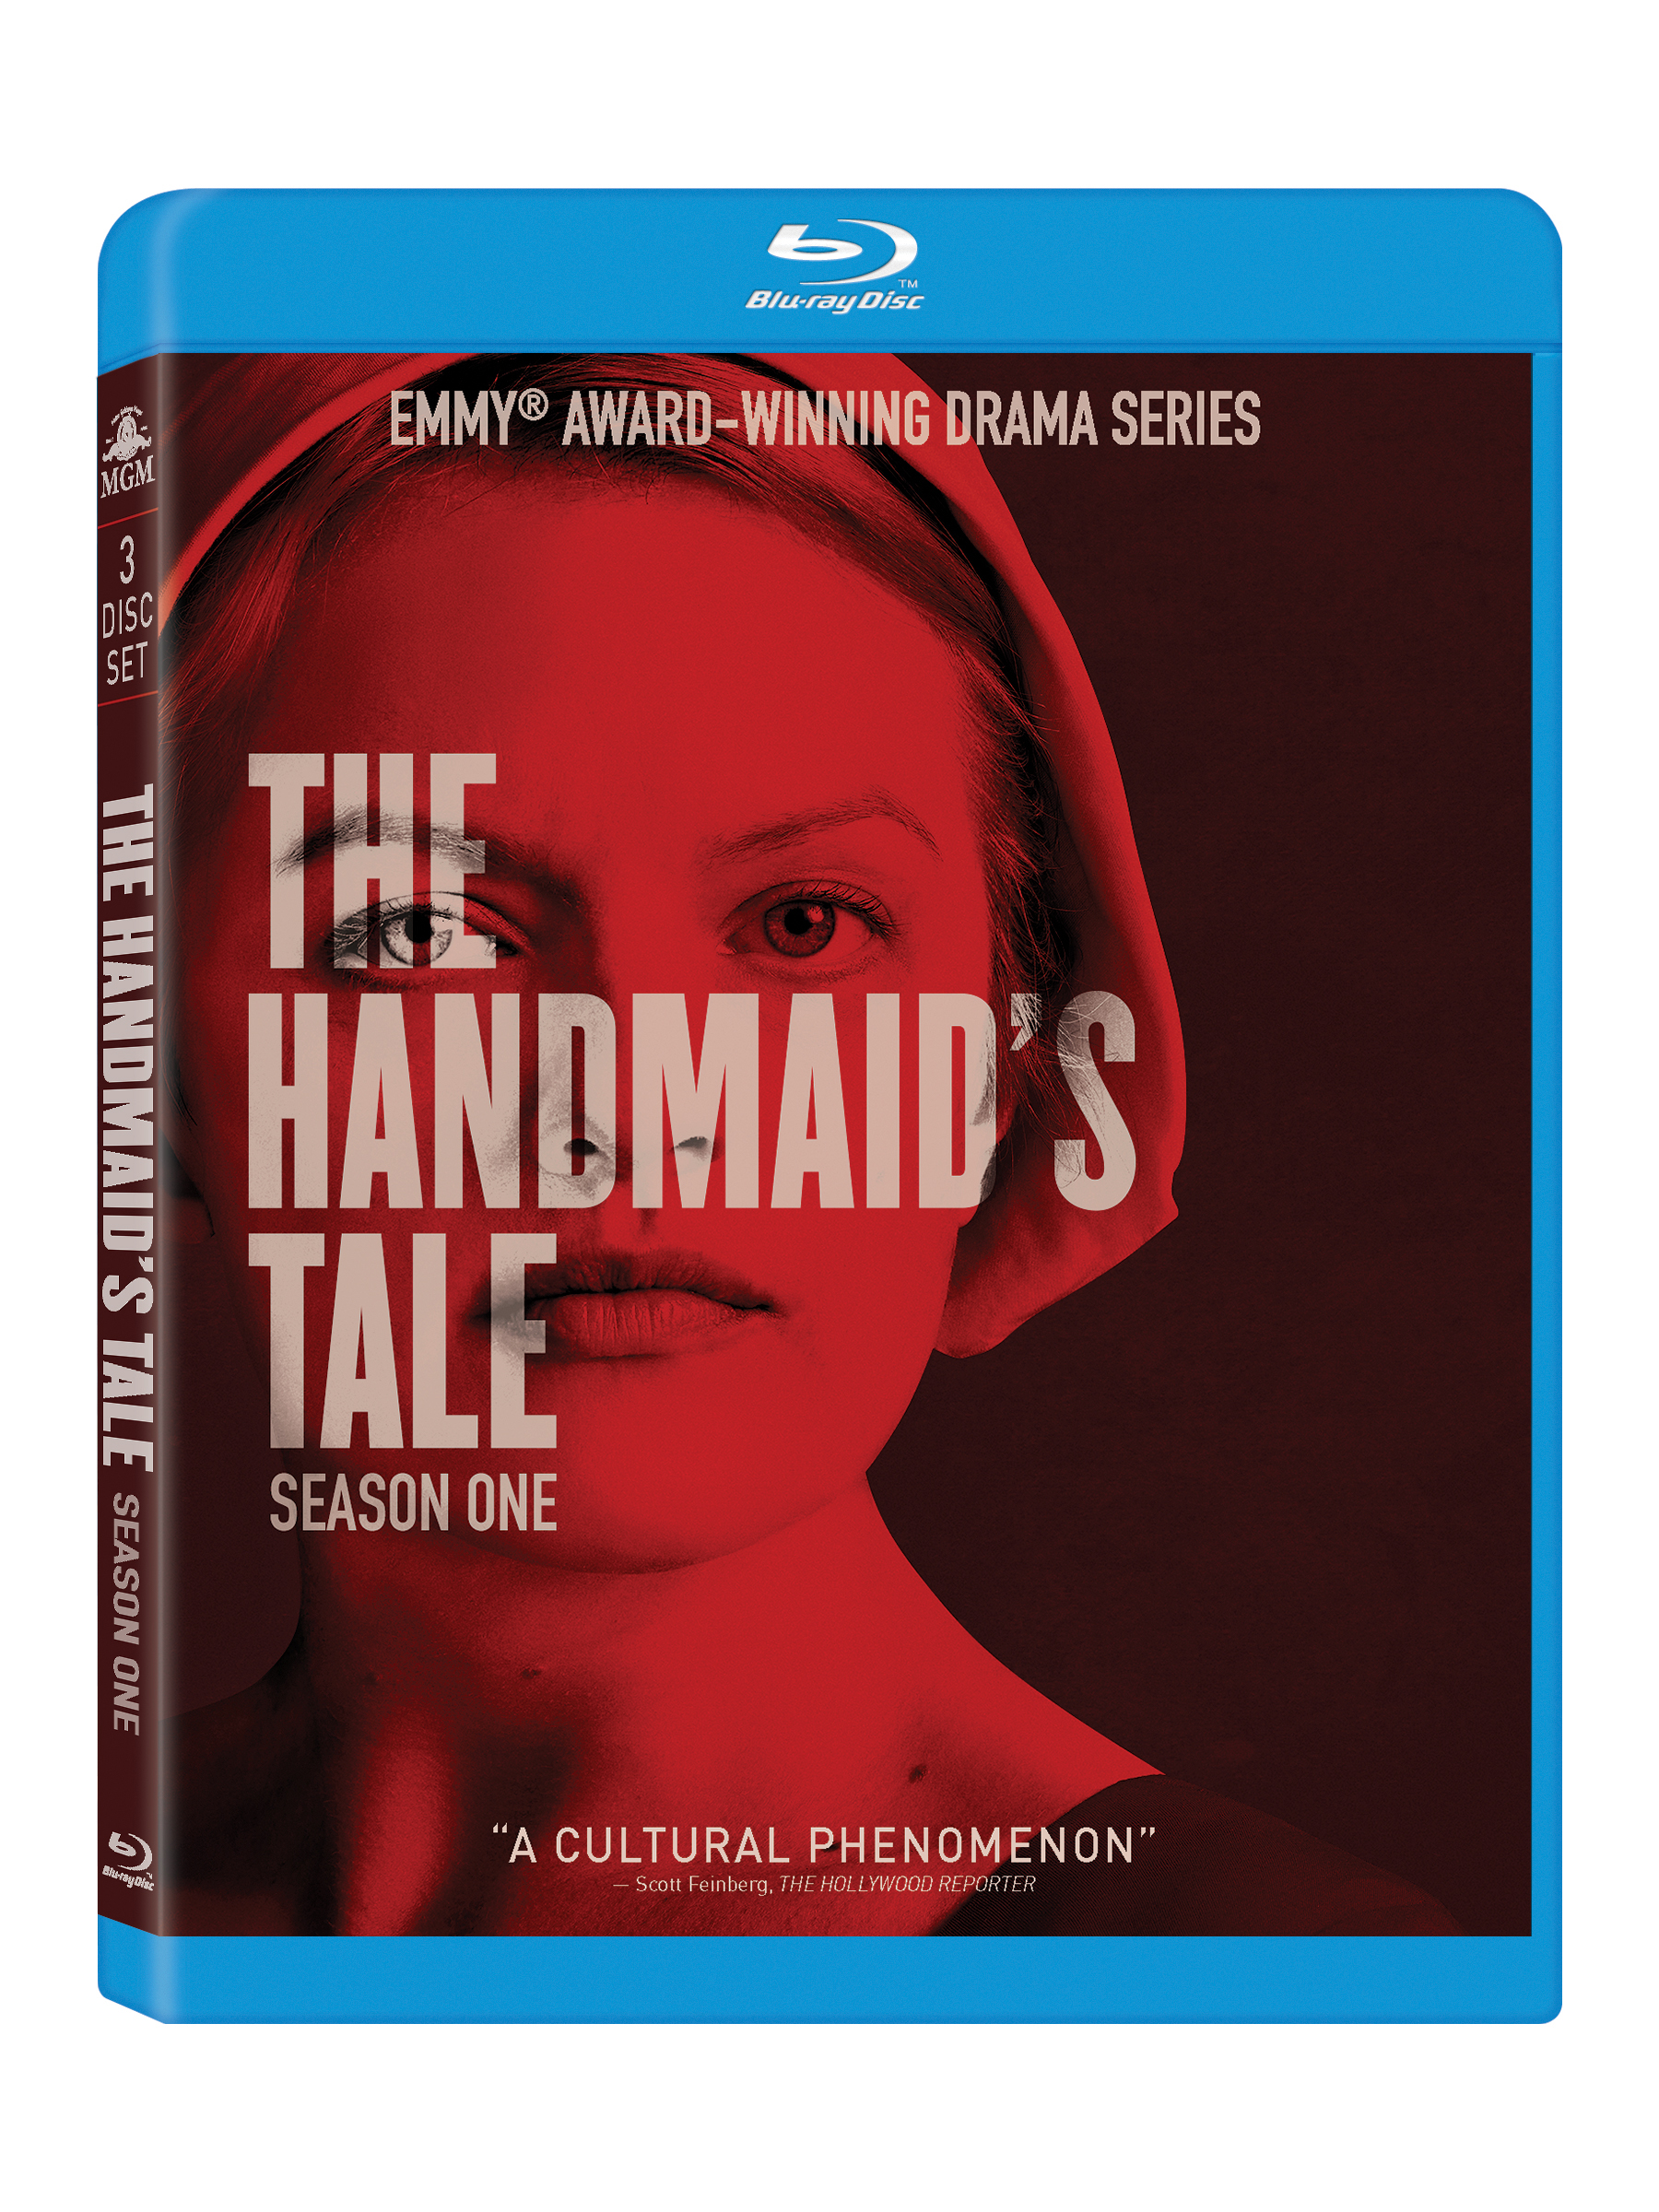 The Handmaid's Tale arrives